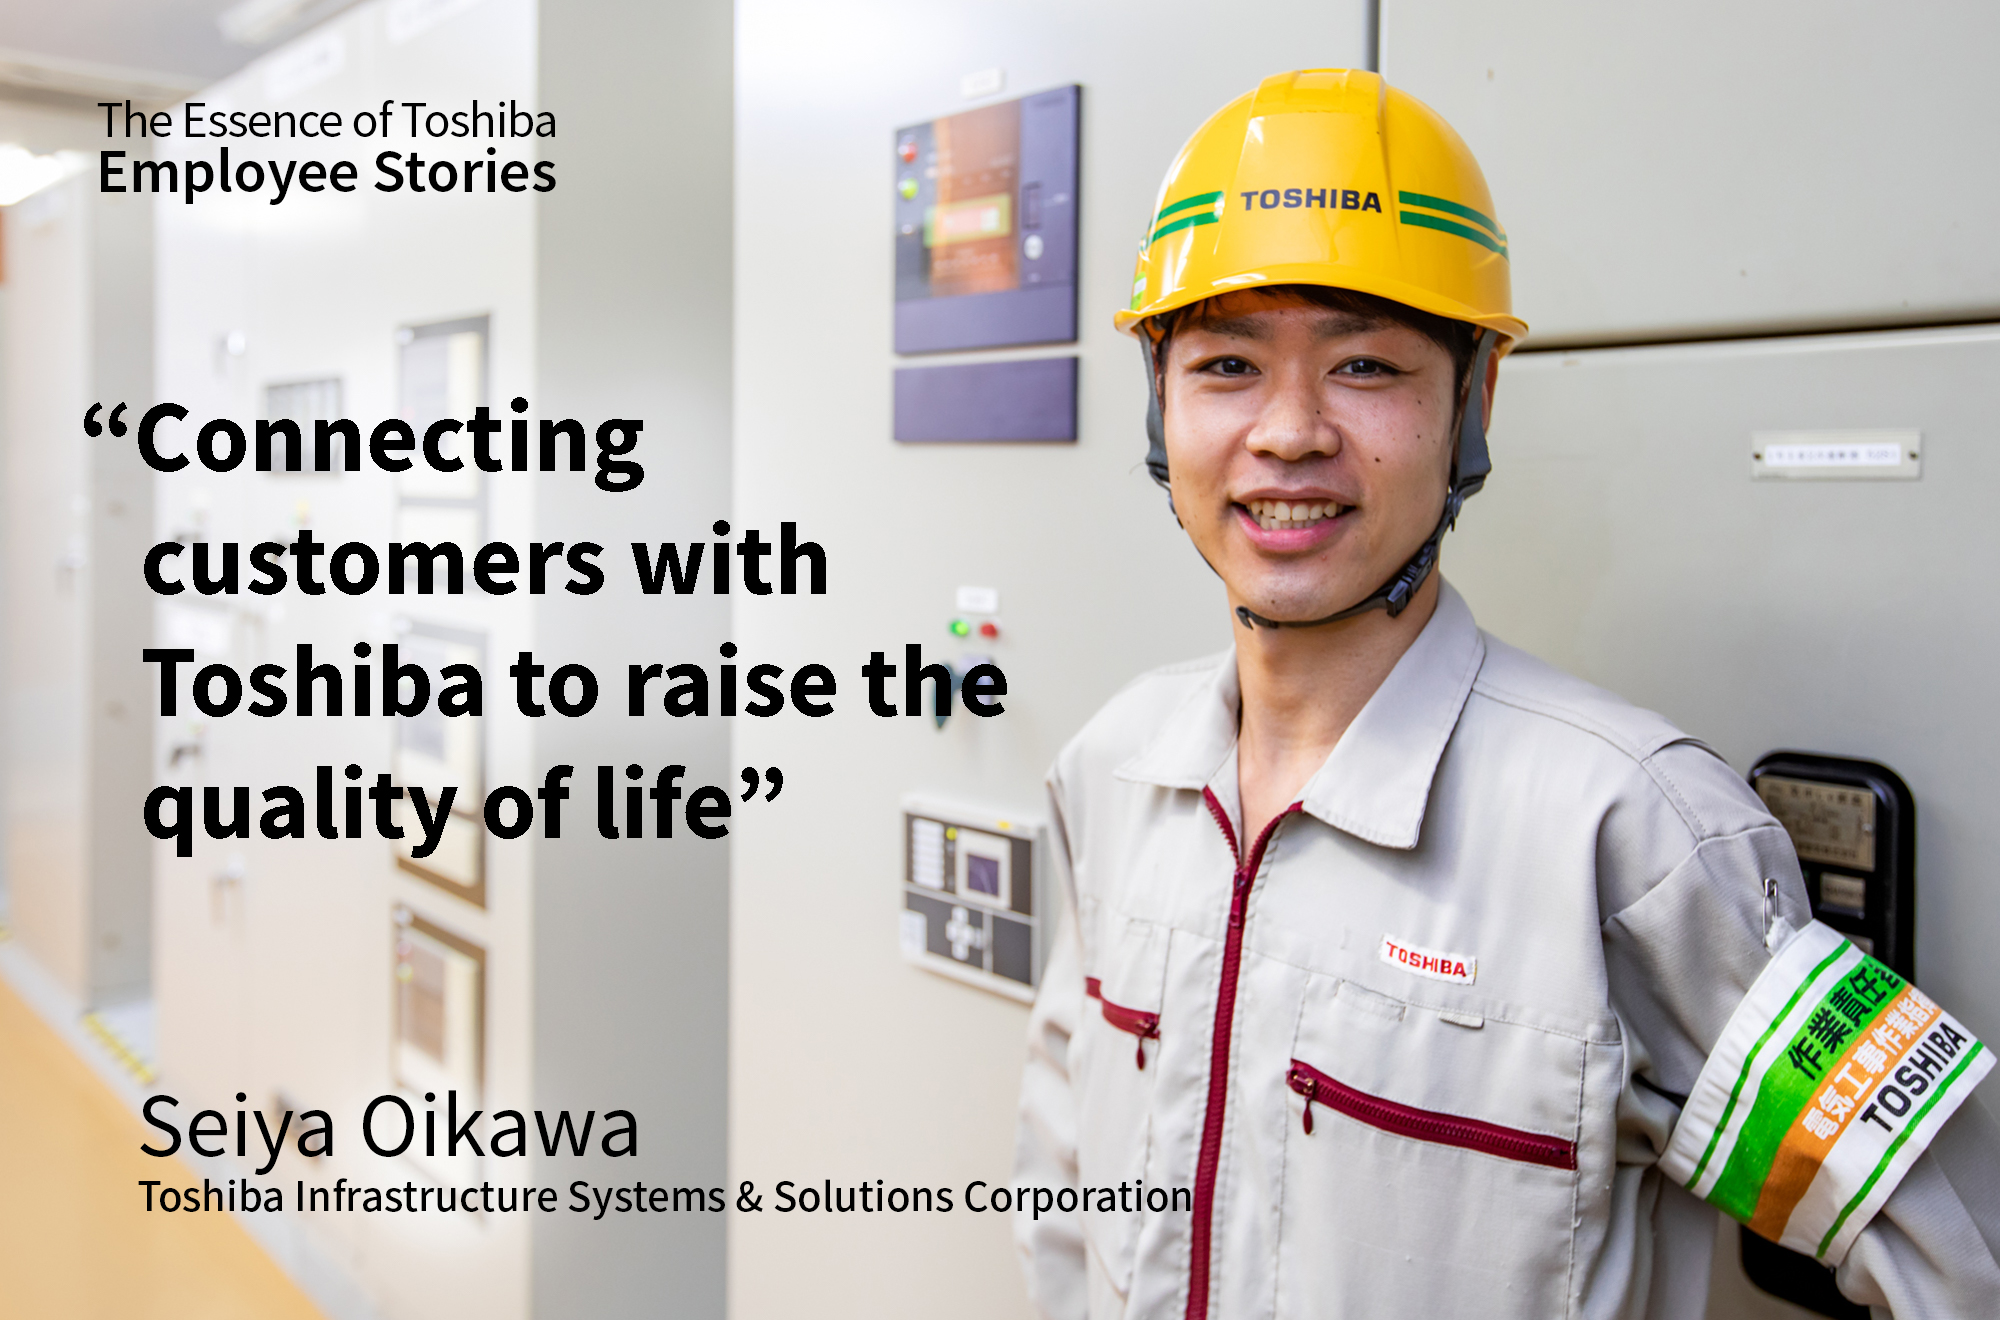 We Are Toshiba: Connecting Customers with Toshiba to Raise the Quality of Life